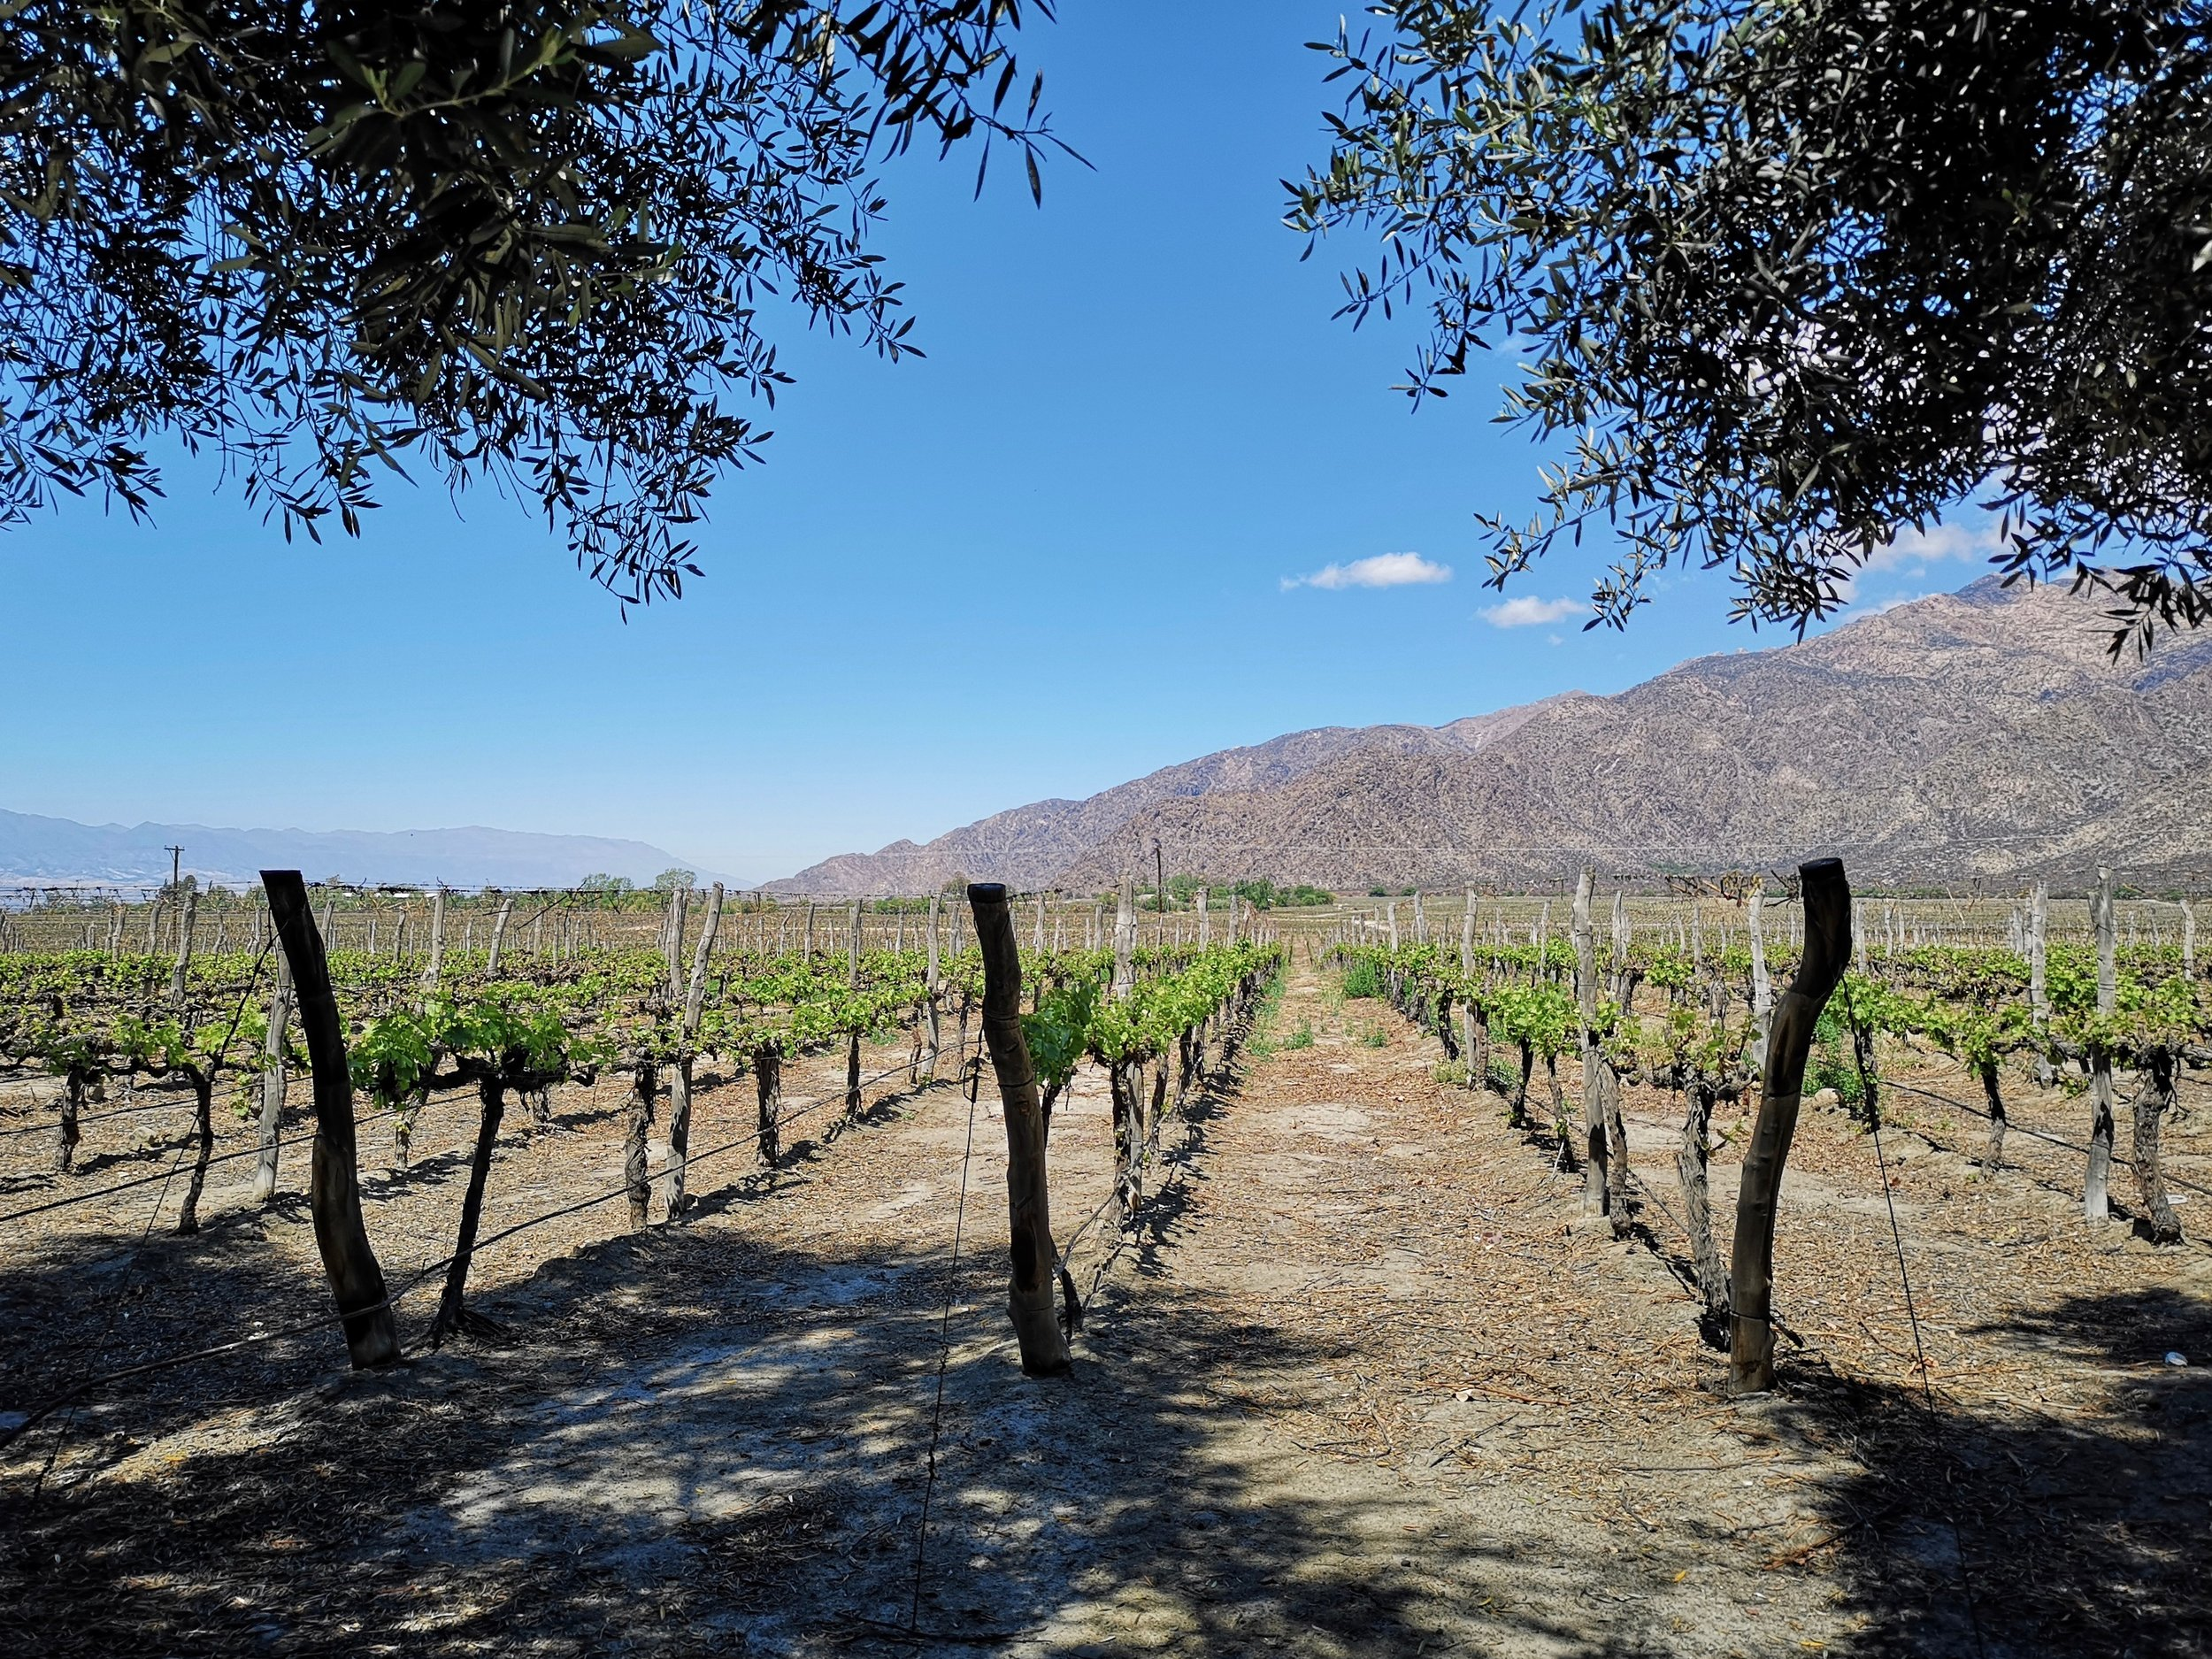 46 Vines at Grace Cafayate   - The Grown Up Edit.jpg